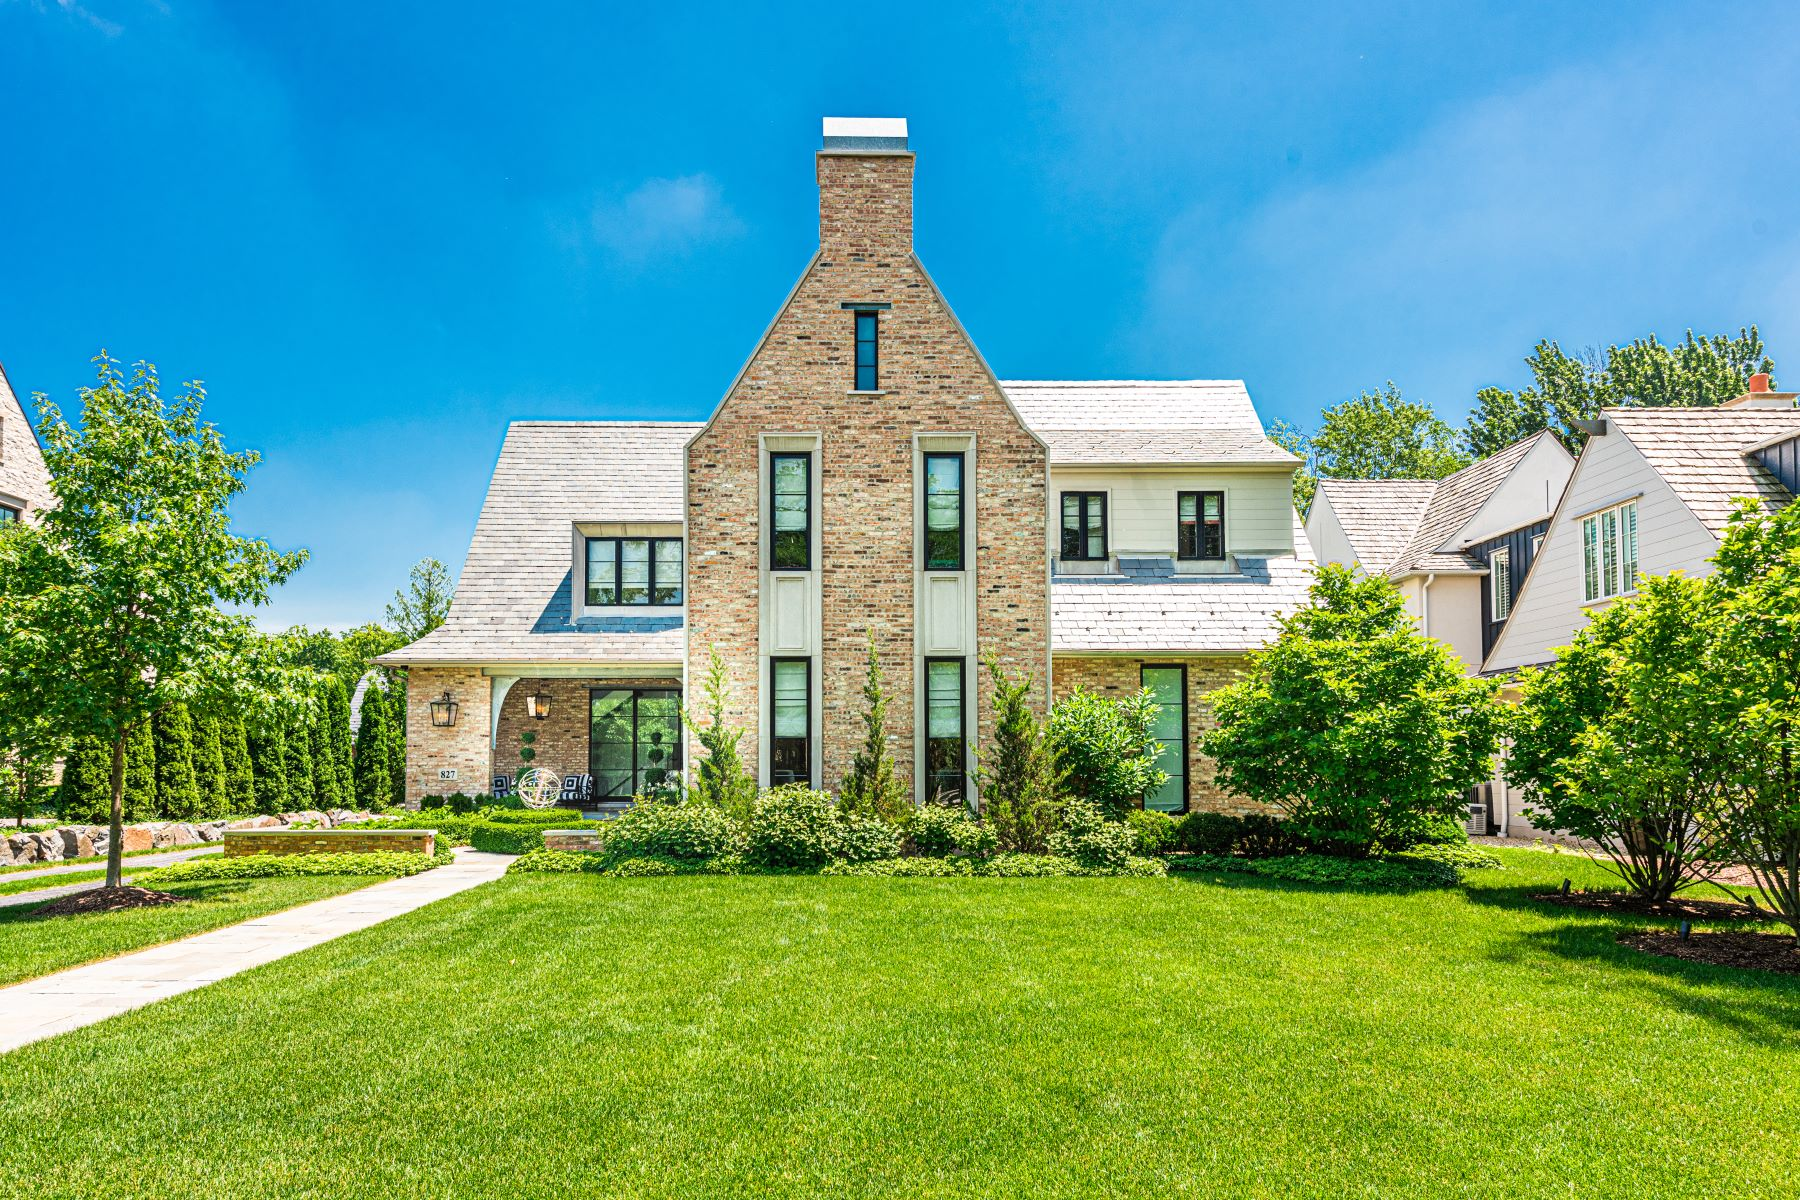 Single Family Homes for Sale at One of a Kind Custom Home 827 S Oak Street Hinsdale, Illinois 60521 United States